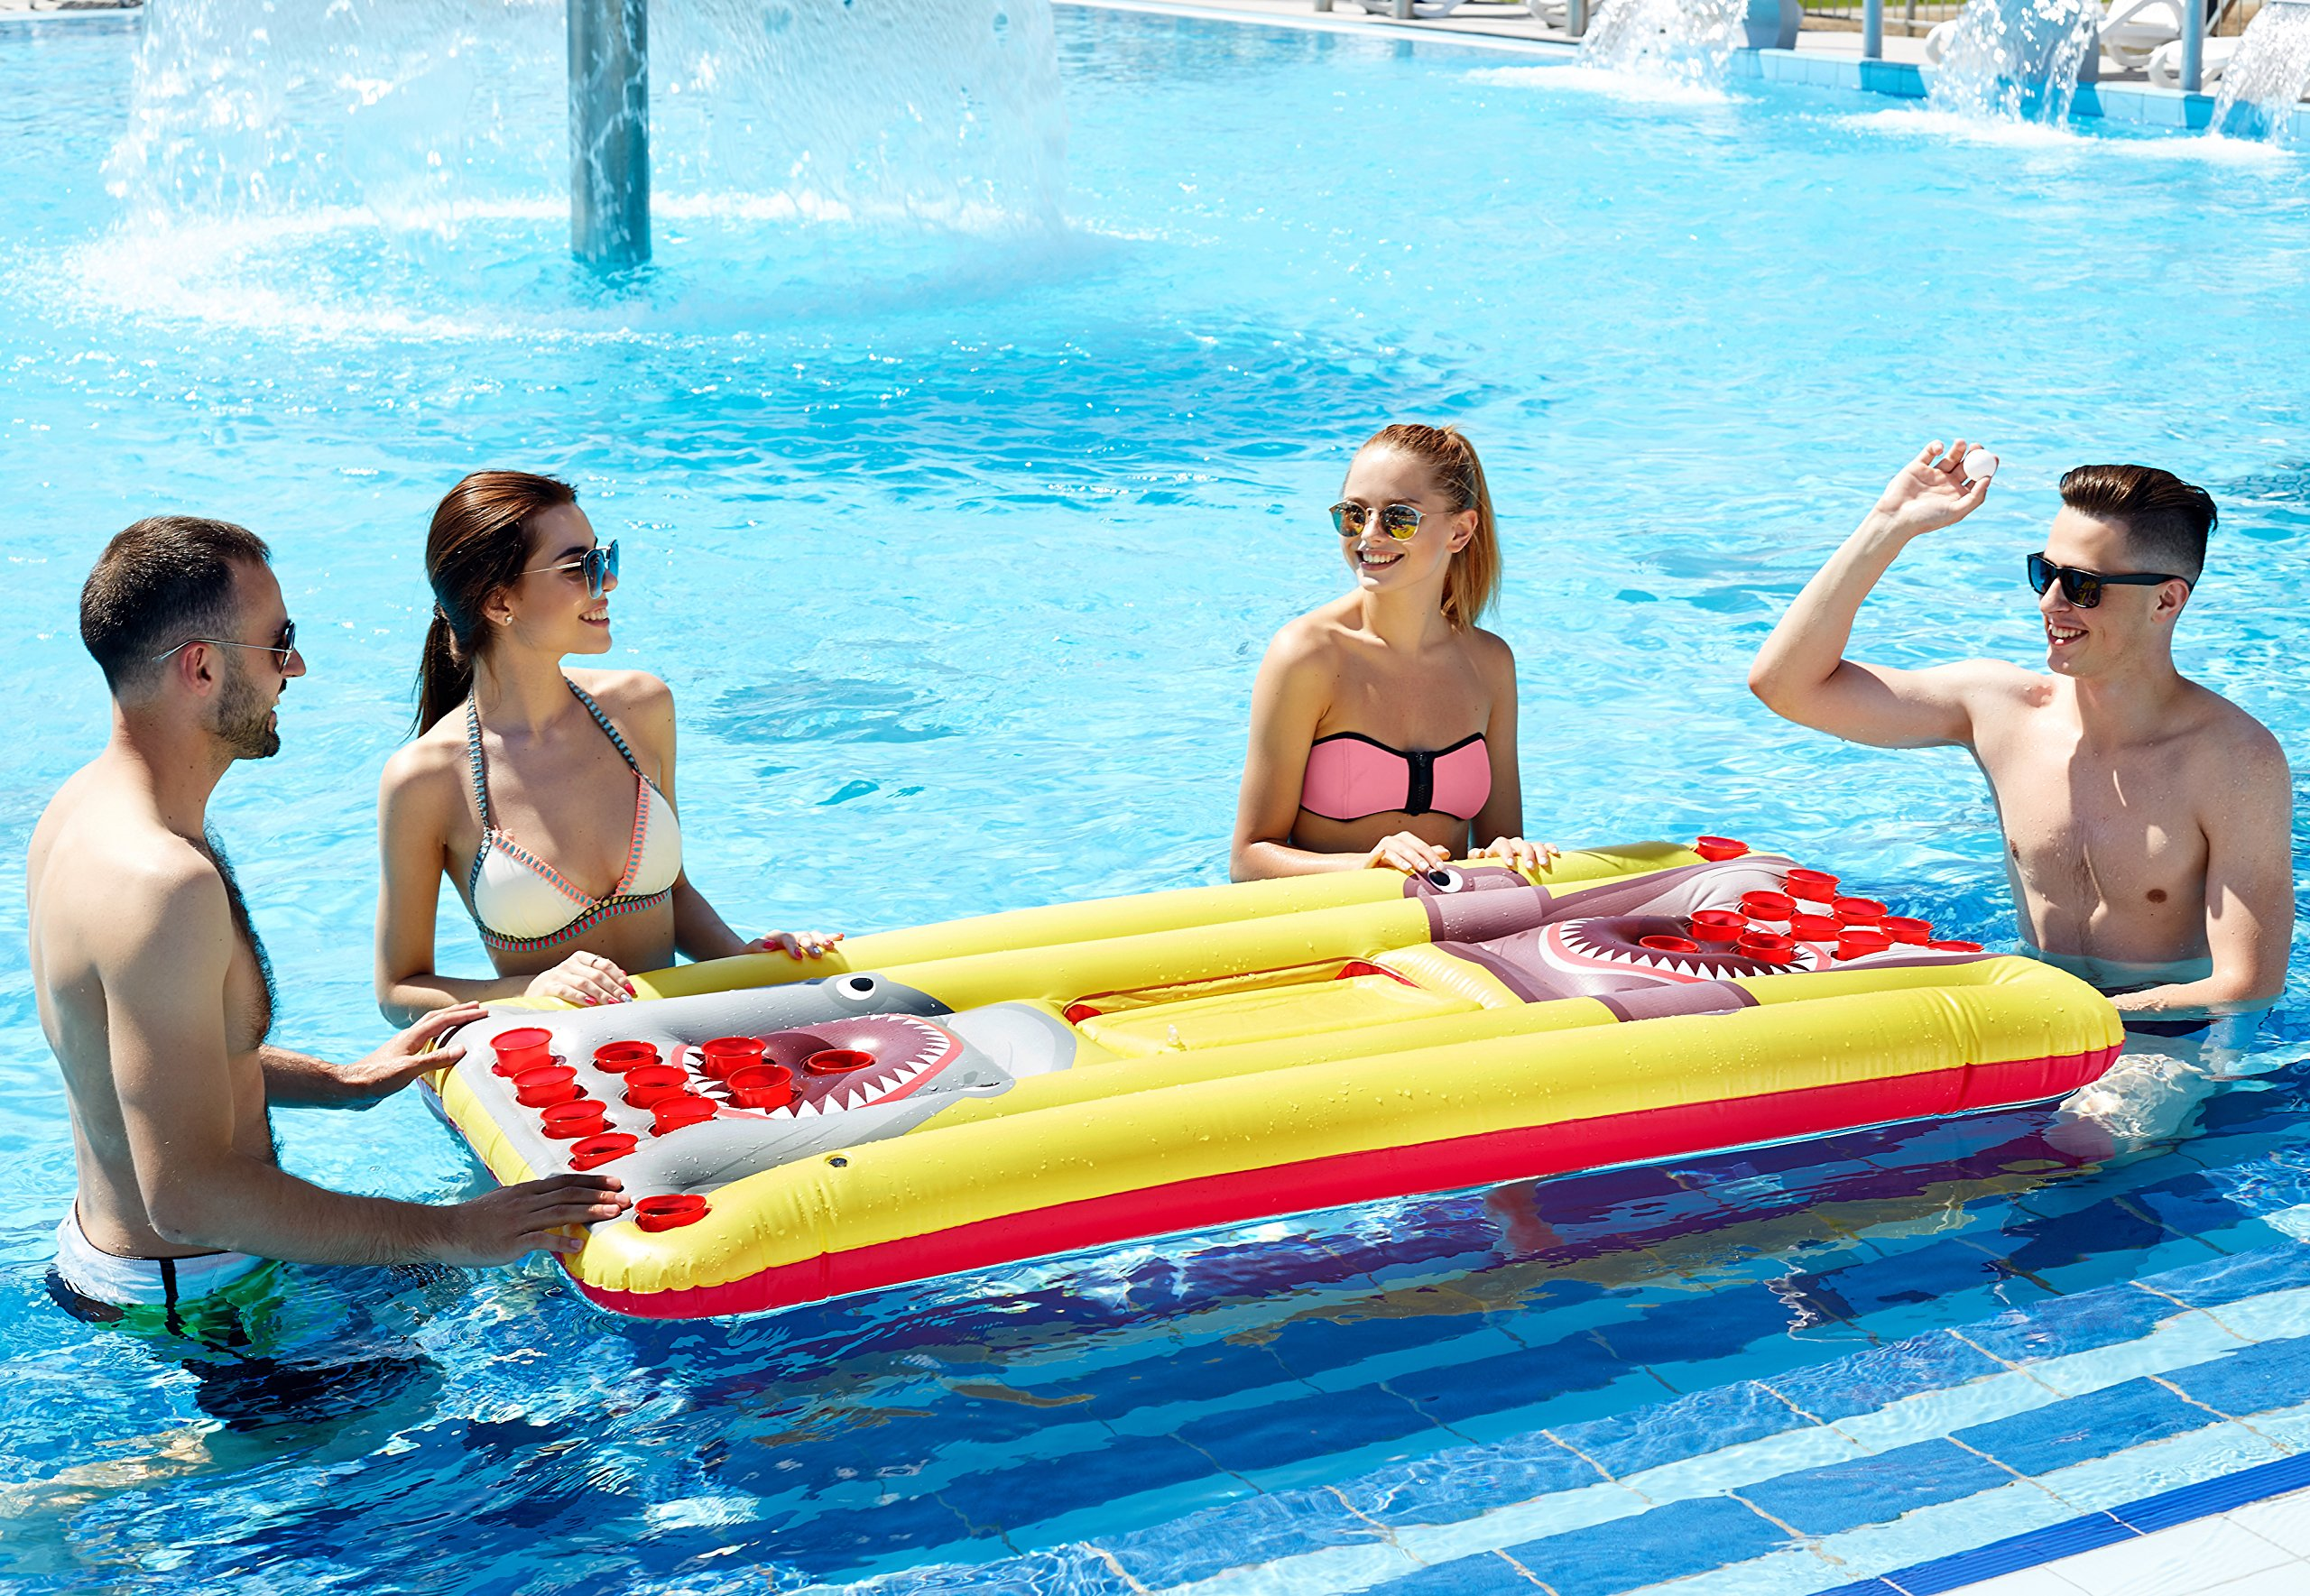 Kenley Beer Pong Pool Float - Inflatable Floating Table with Cooler and Holes - Swimming Pool Party Drinking Games for Adults - Giant Lounge Bar Raft Set by Kenley